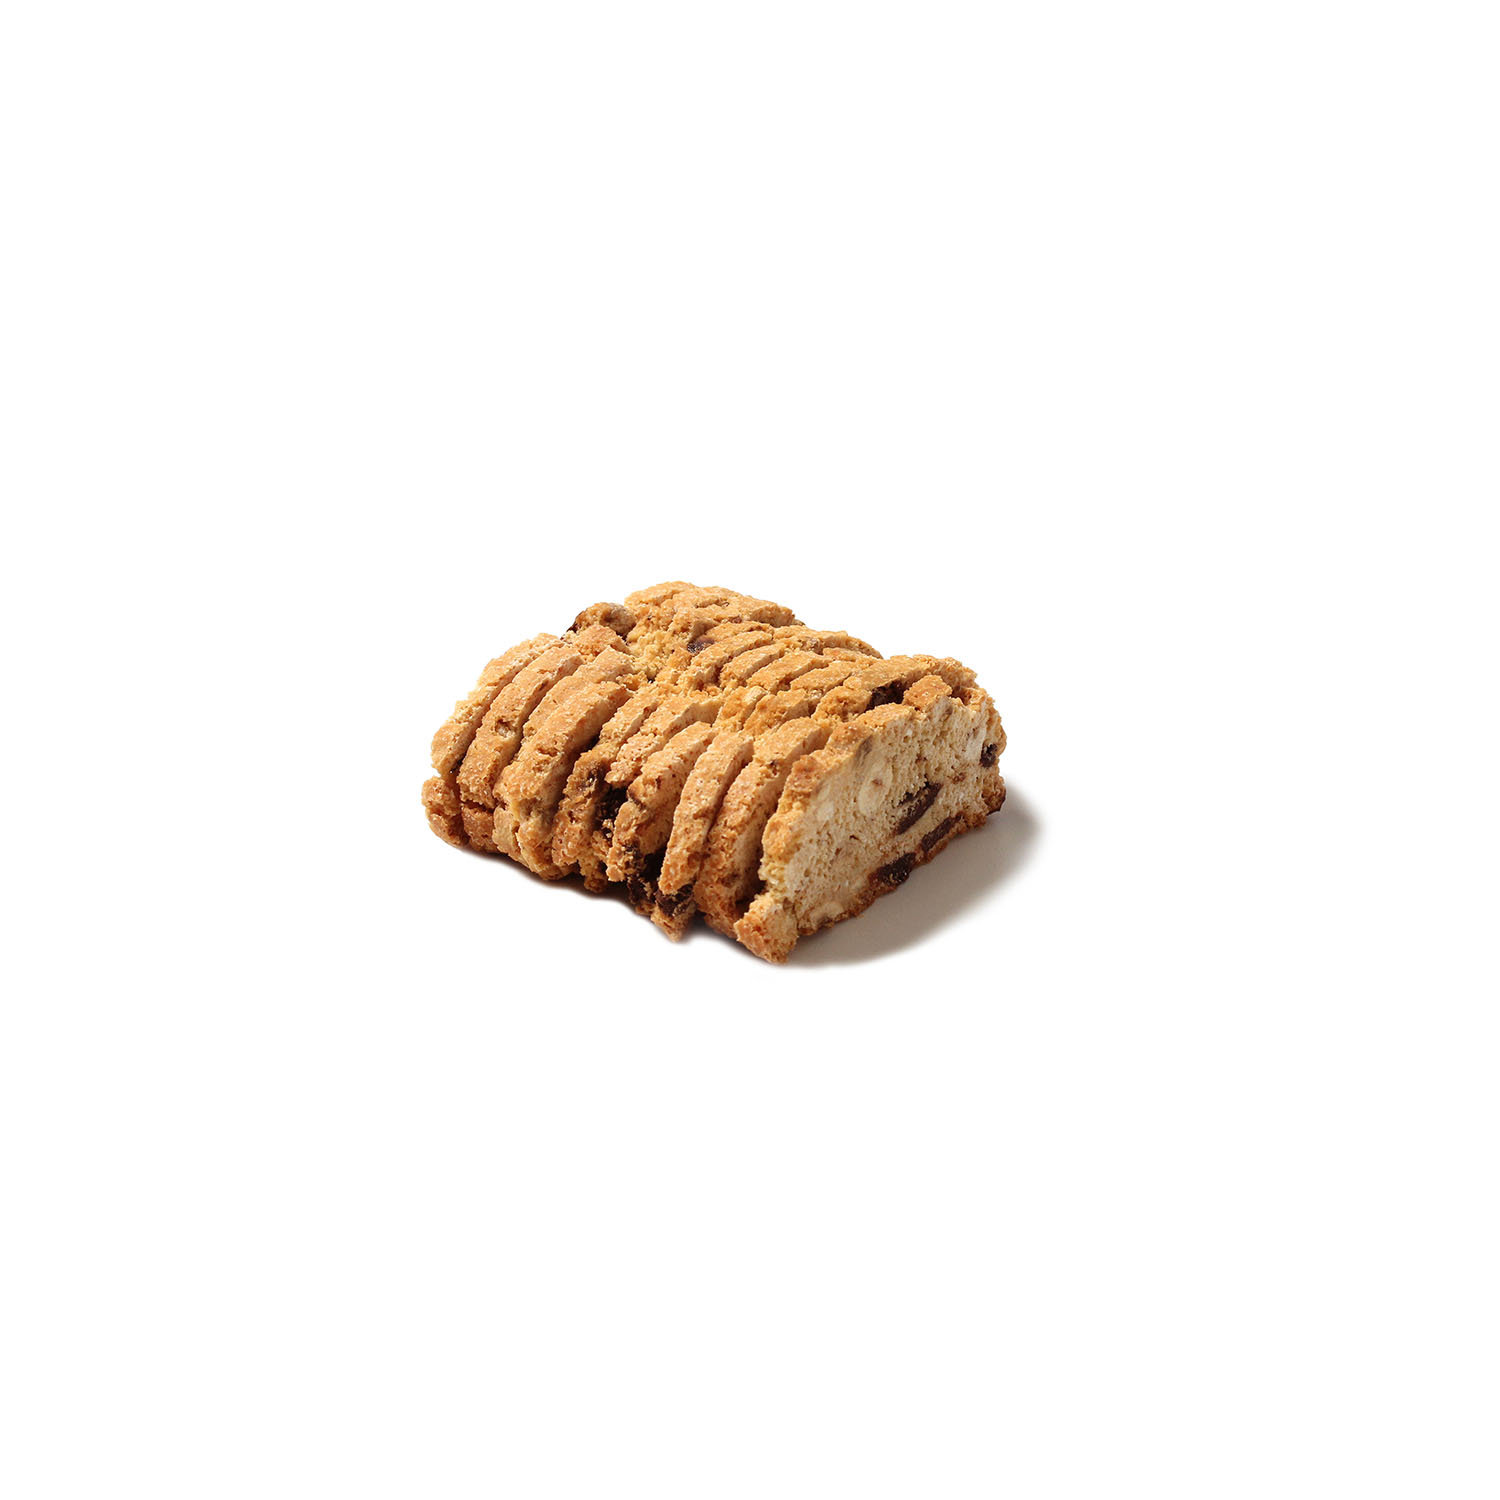 biscotti chocolate hazelnut bag free italian hard biscuit filled with ...